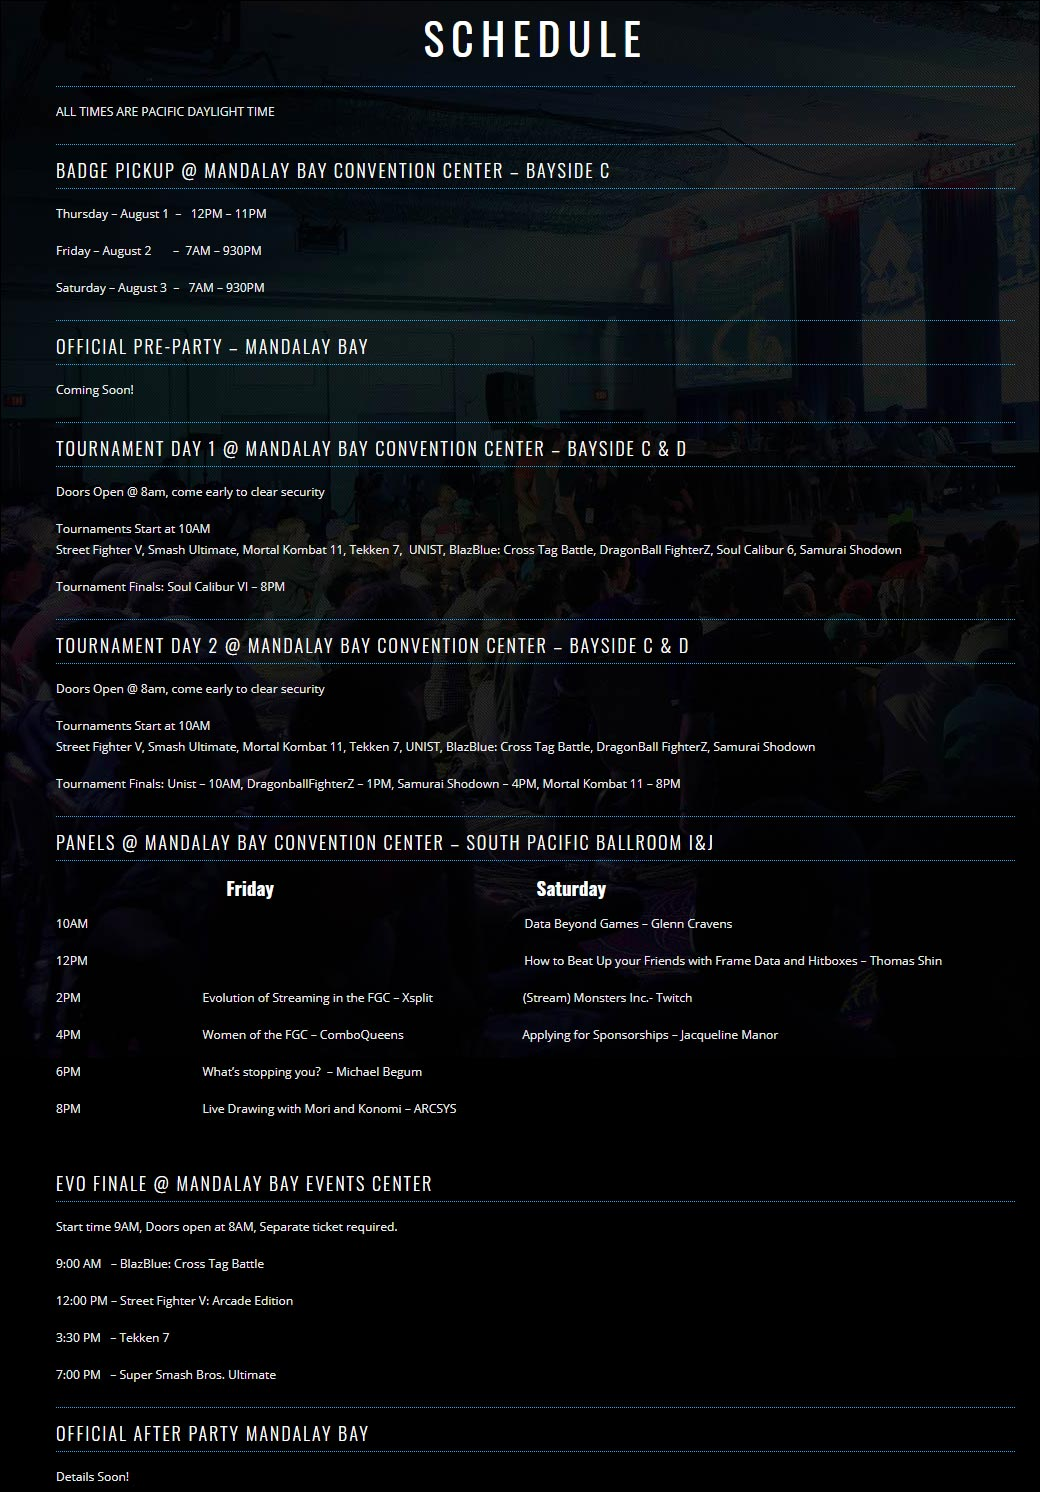 EVO Schedule and Commentators 1 out of 2 image gallery